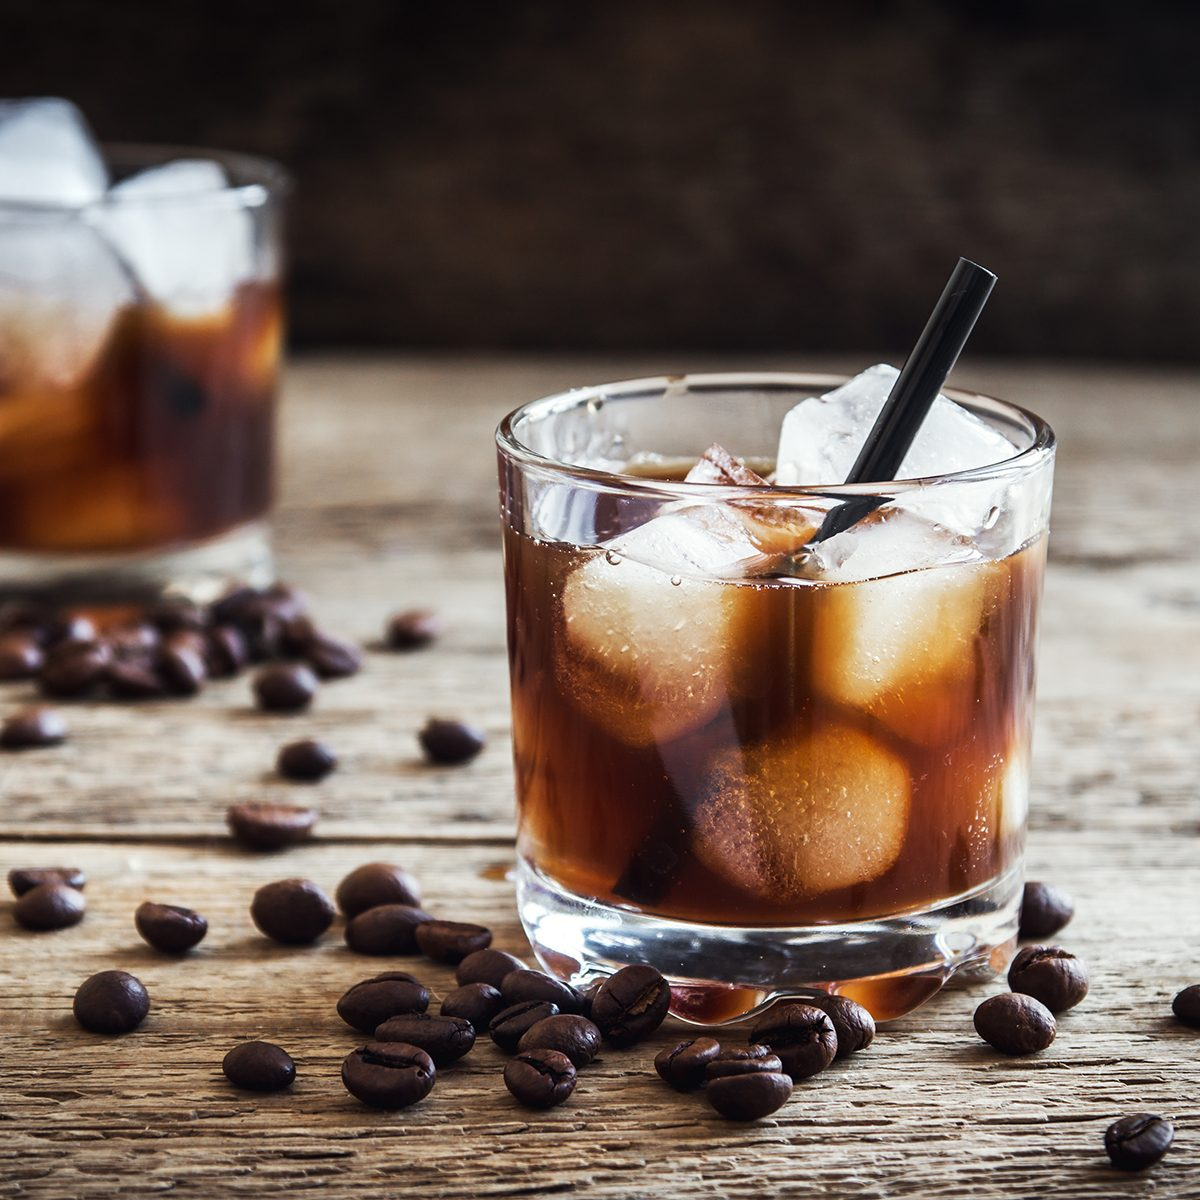 Black Russian Cocktail with Vodka and Coffee Liquor.